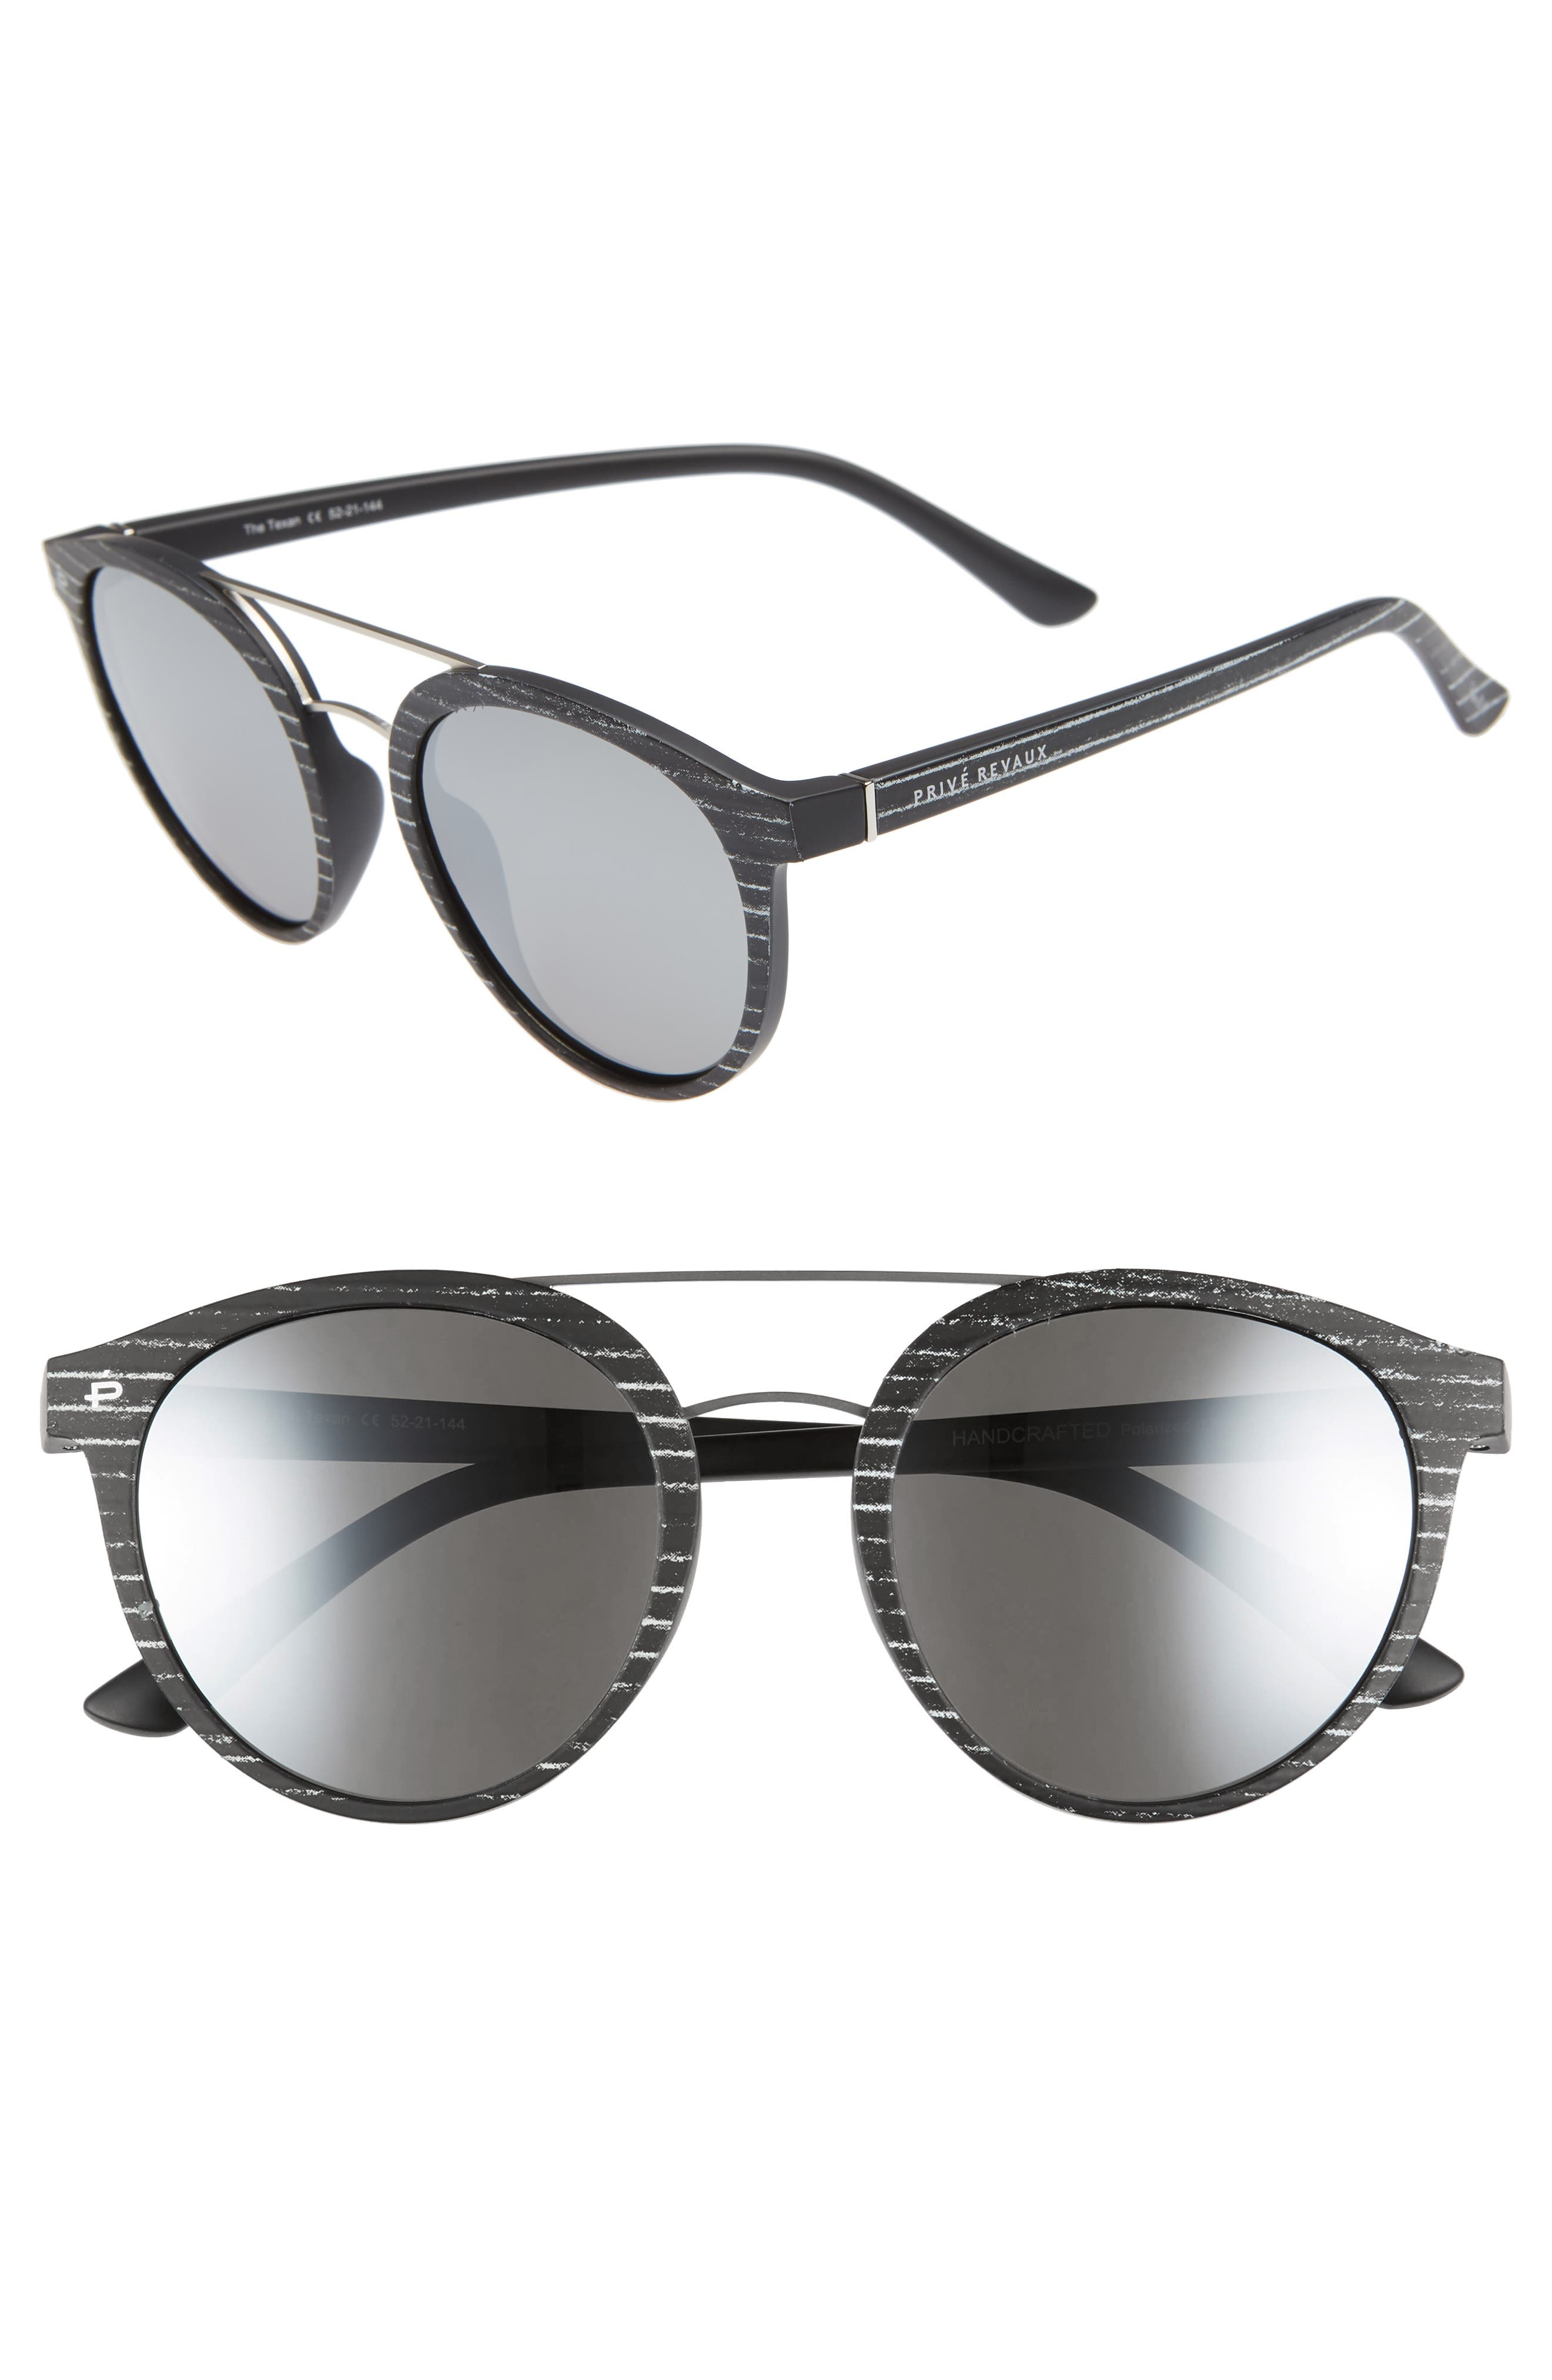 Privé Revaux The Texan 52mm Sunglasses,                         Main,                         color, MATTE BLACK / PAPER